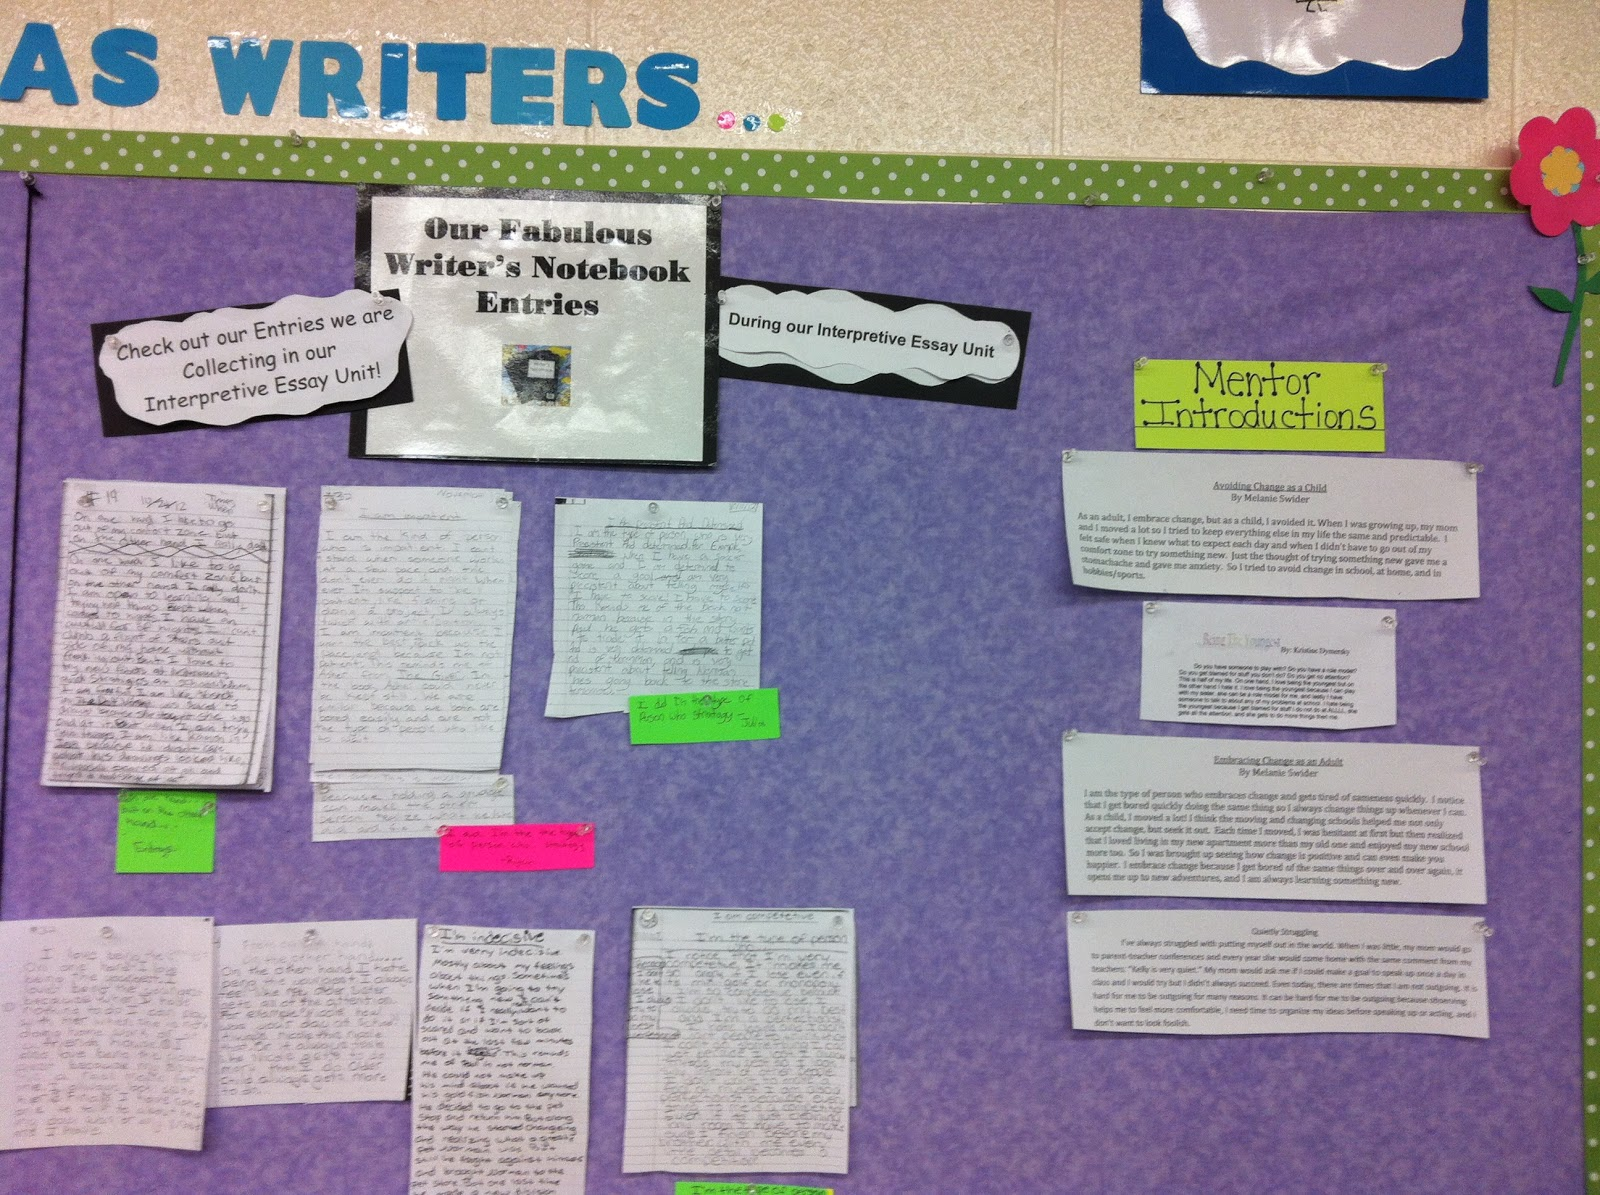 two reflective teachers bulletin boards and charts interpretive essay unit bulletin board displaying entries and mentor introductions from students